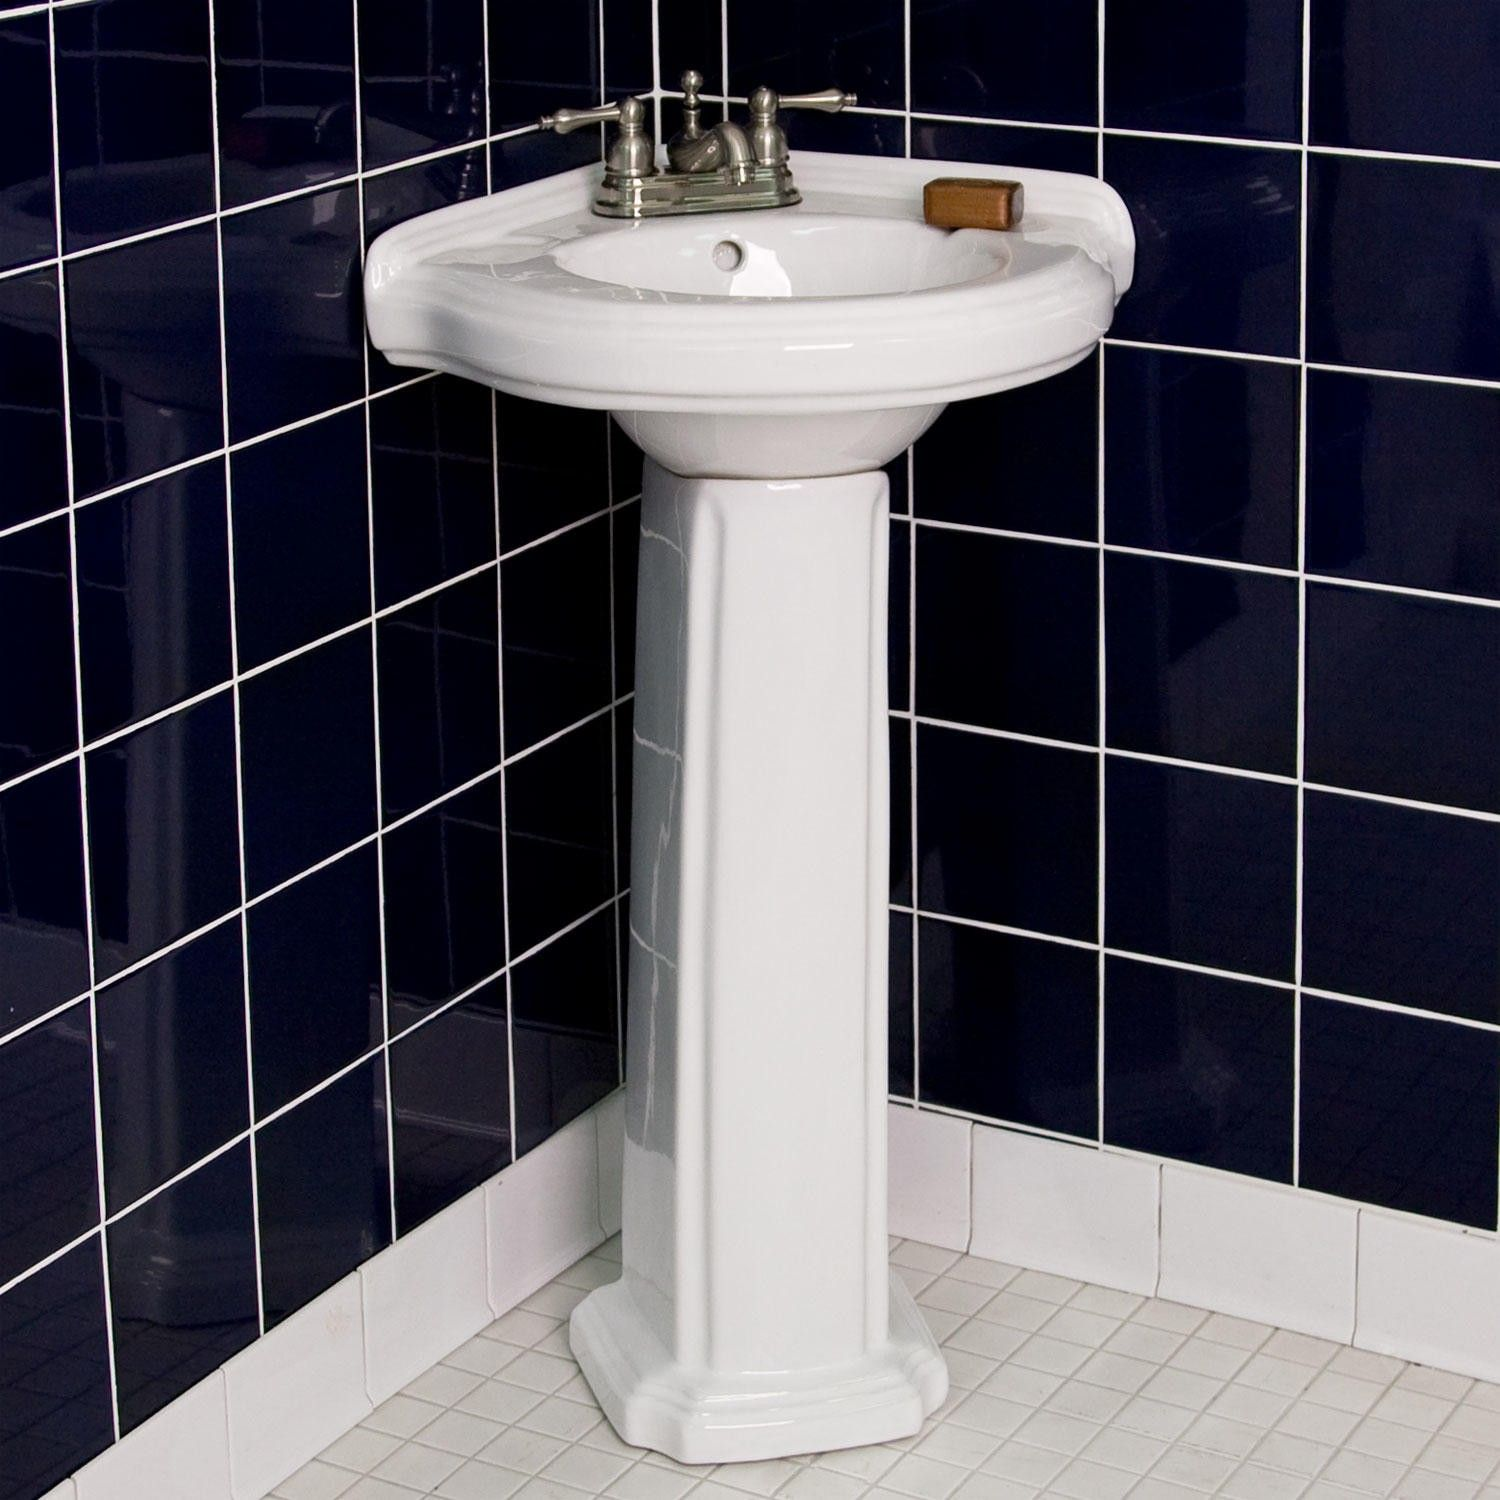 Gaston Corner Porcelain Pedestal Sink